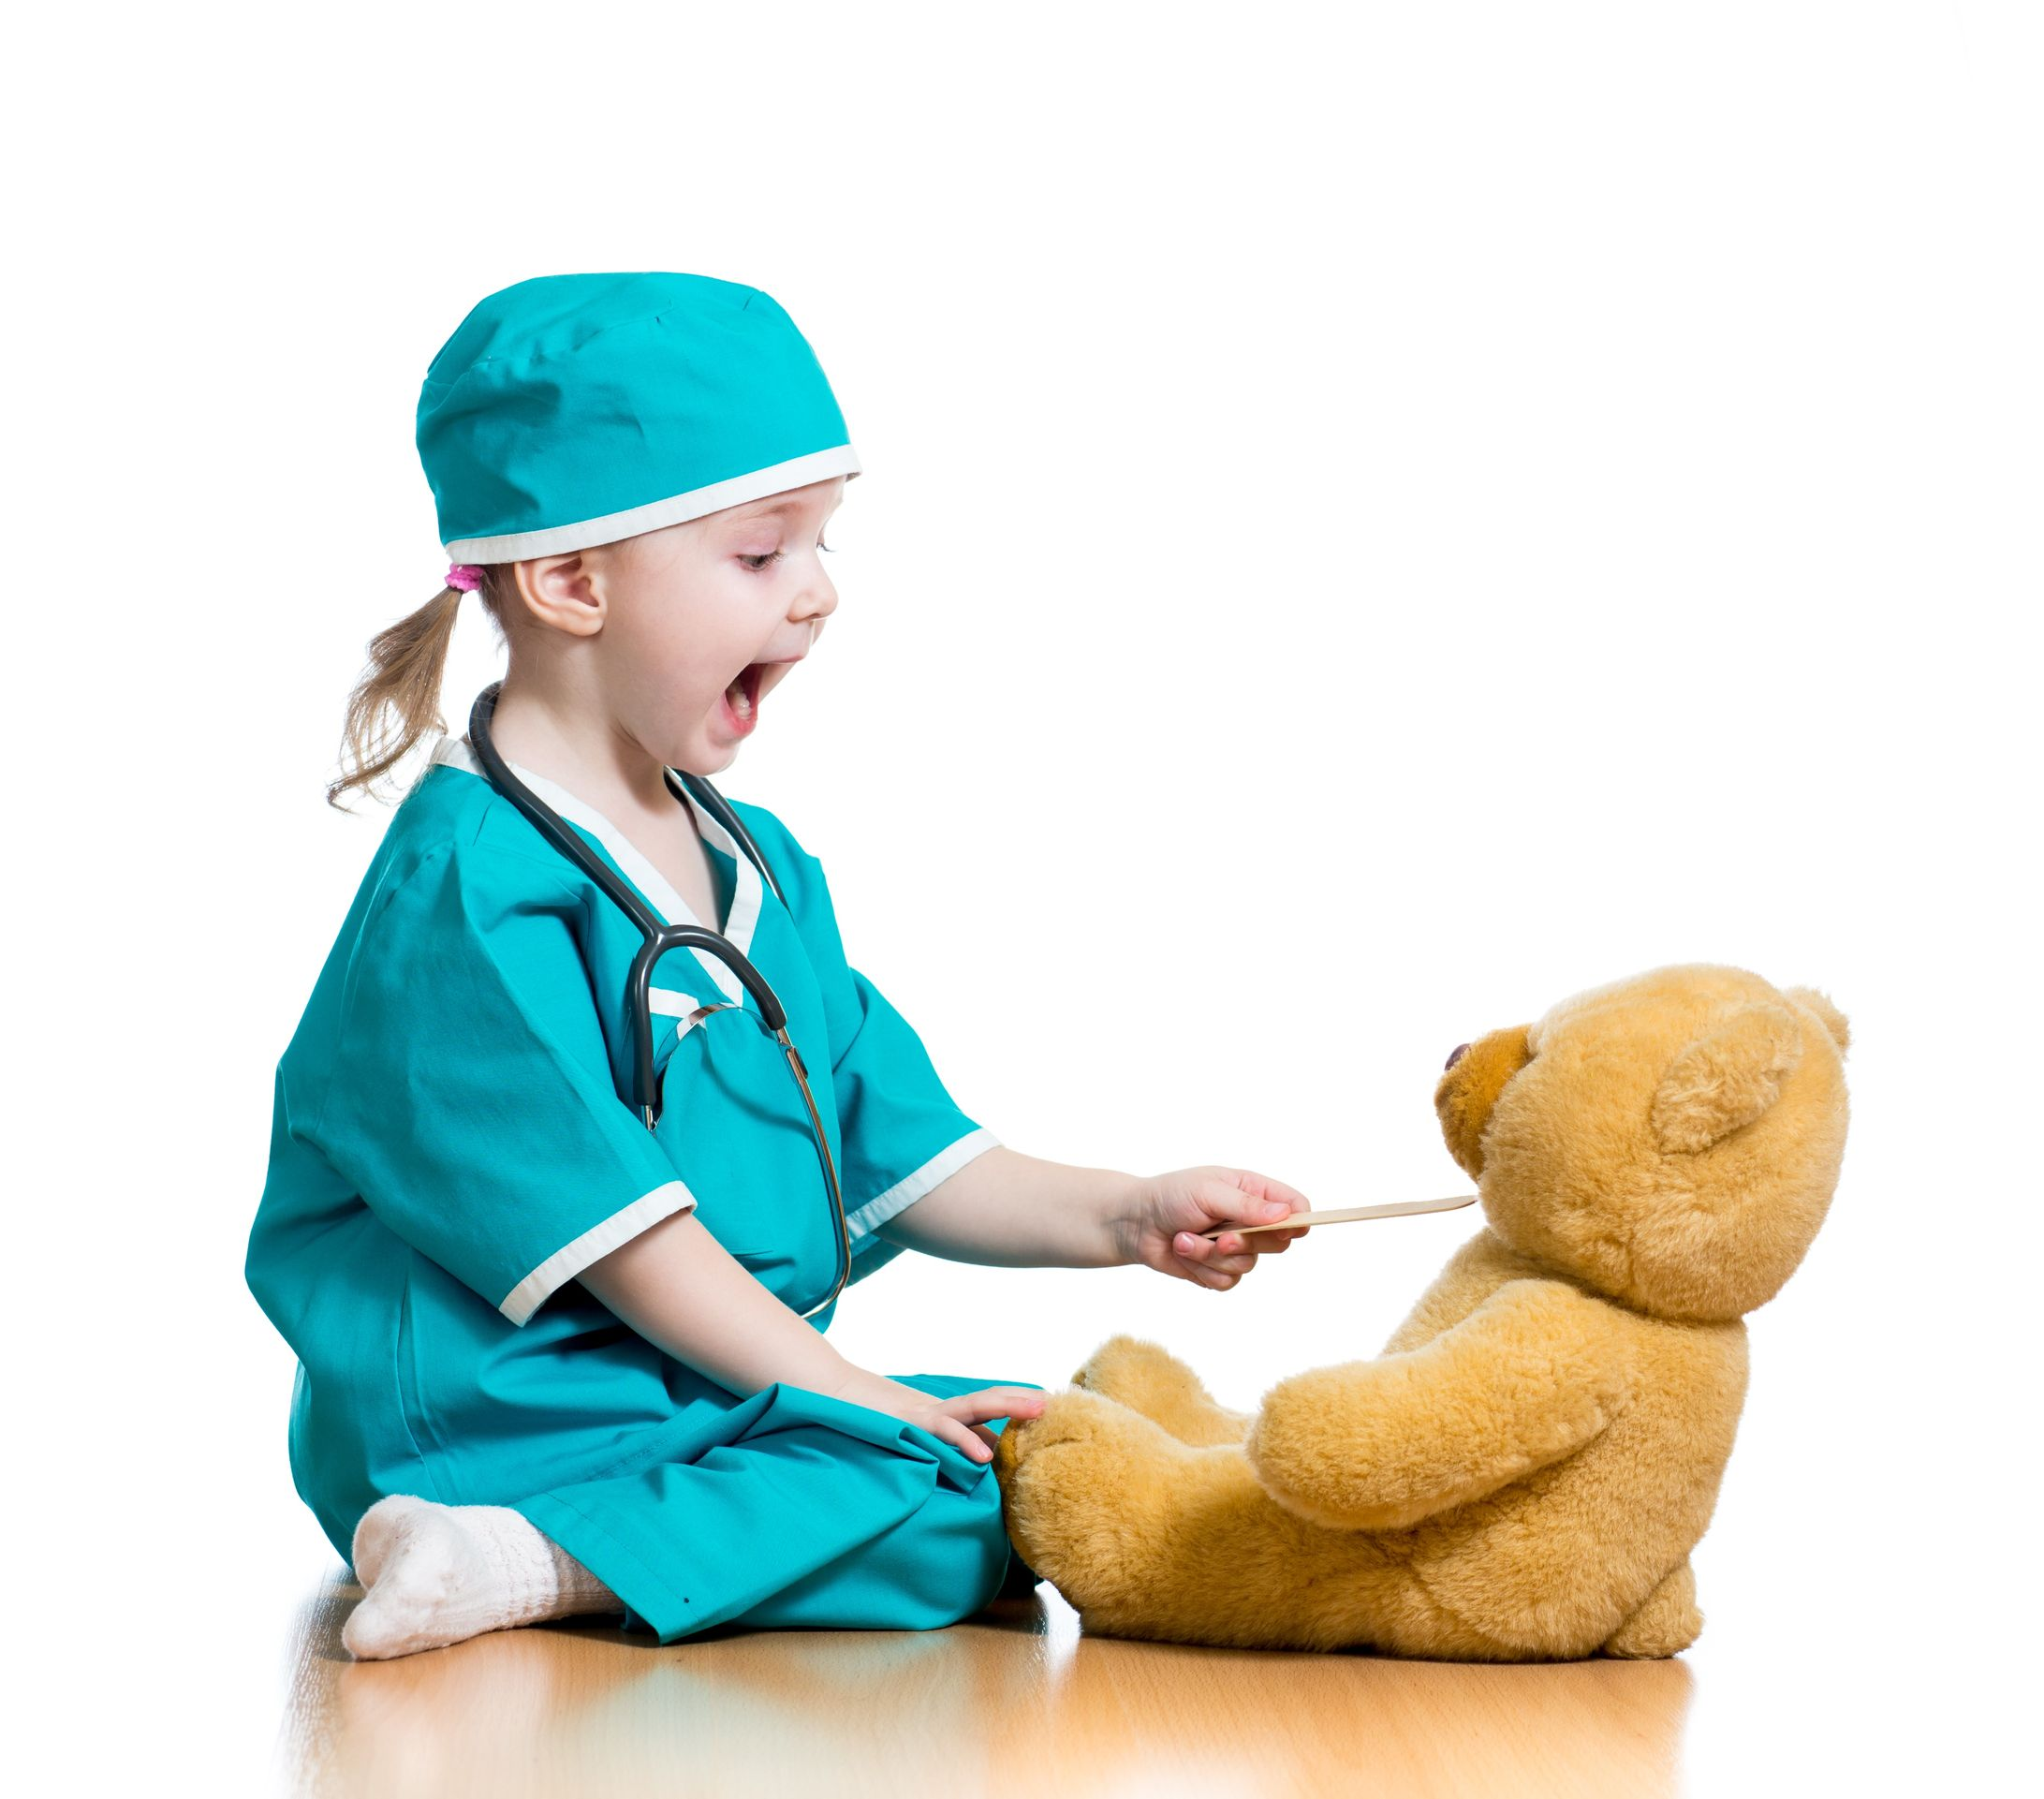 playing doctor, pretend play and cognitive development